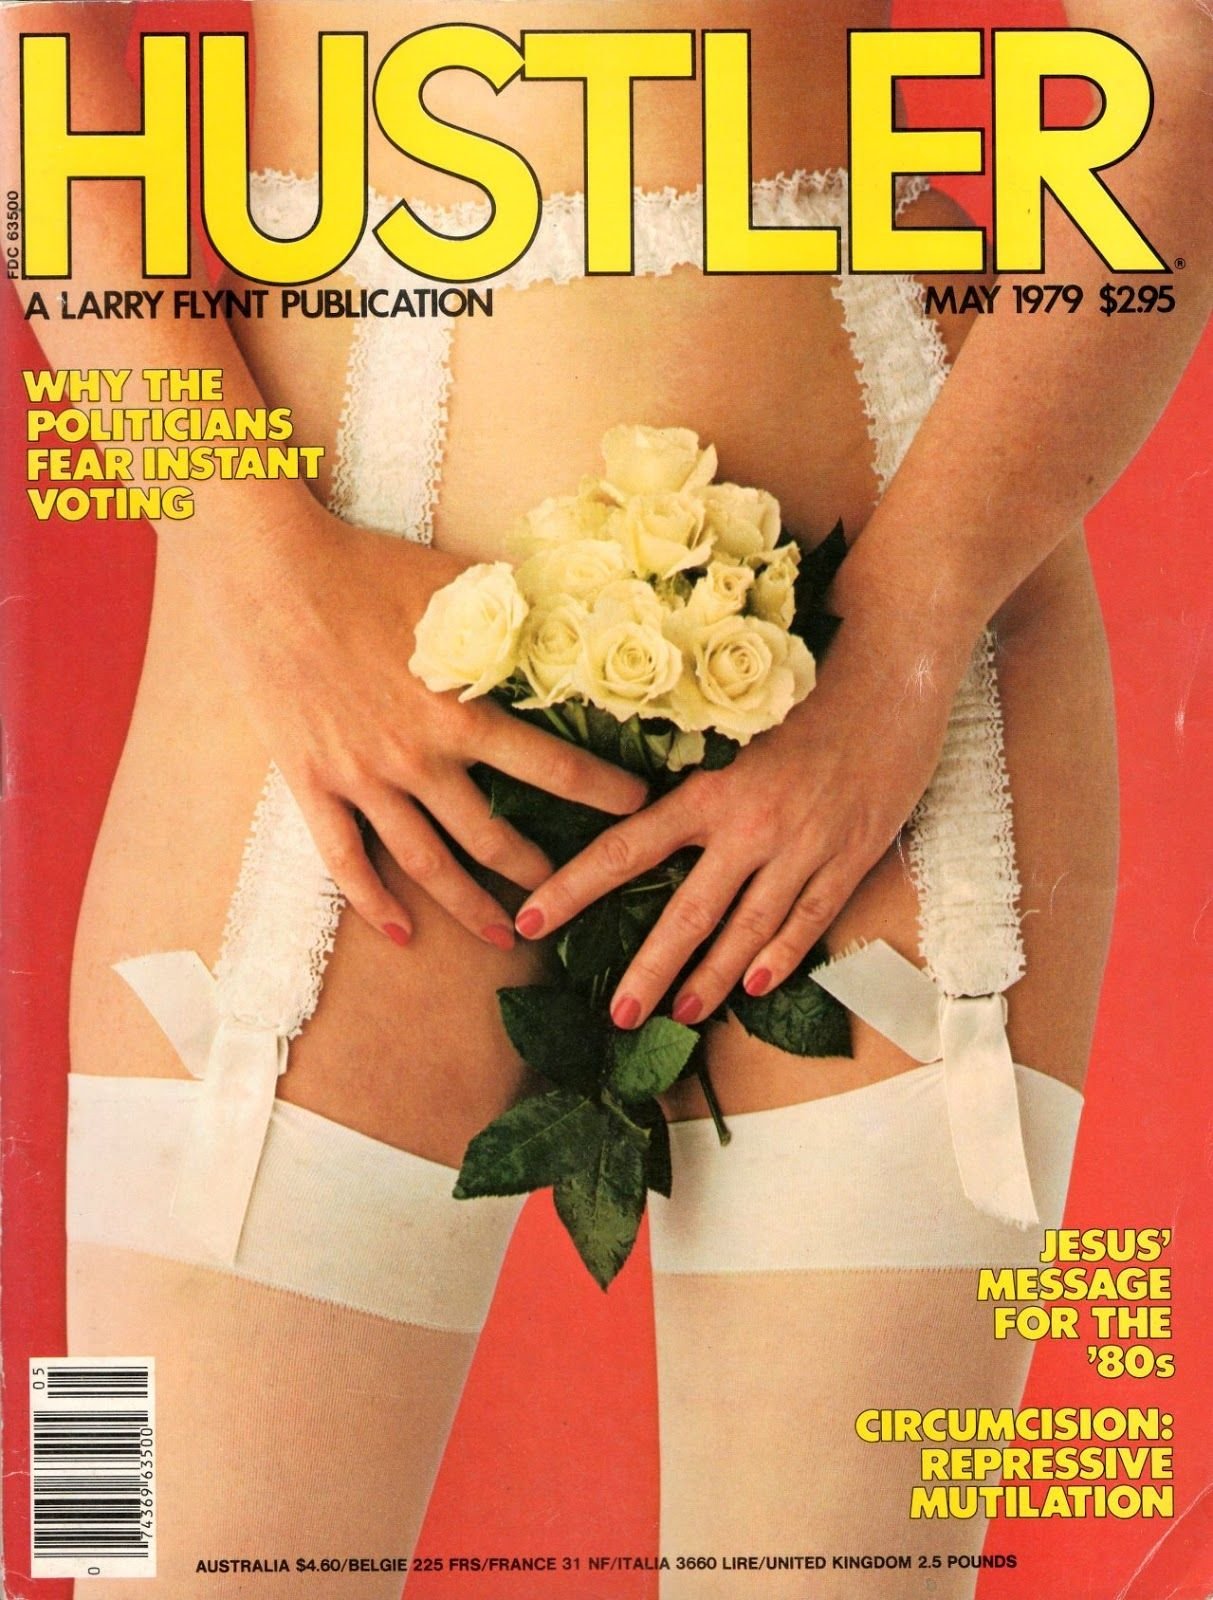 Hustler may 1979 photo spreads